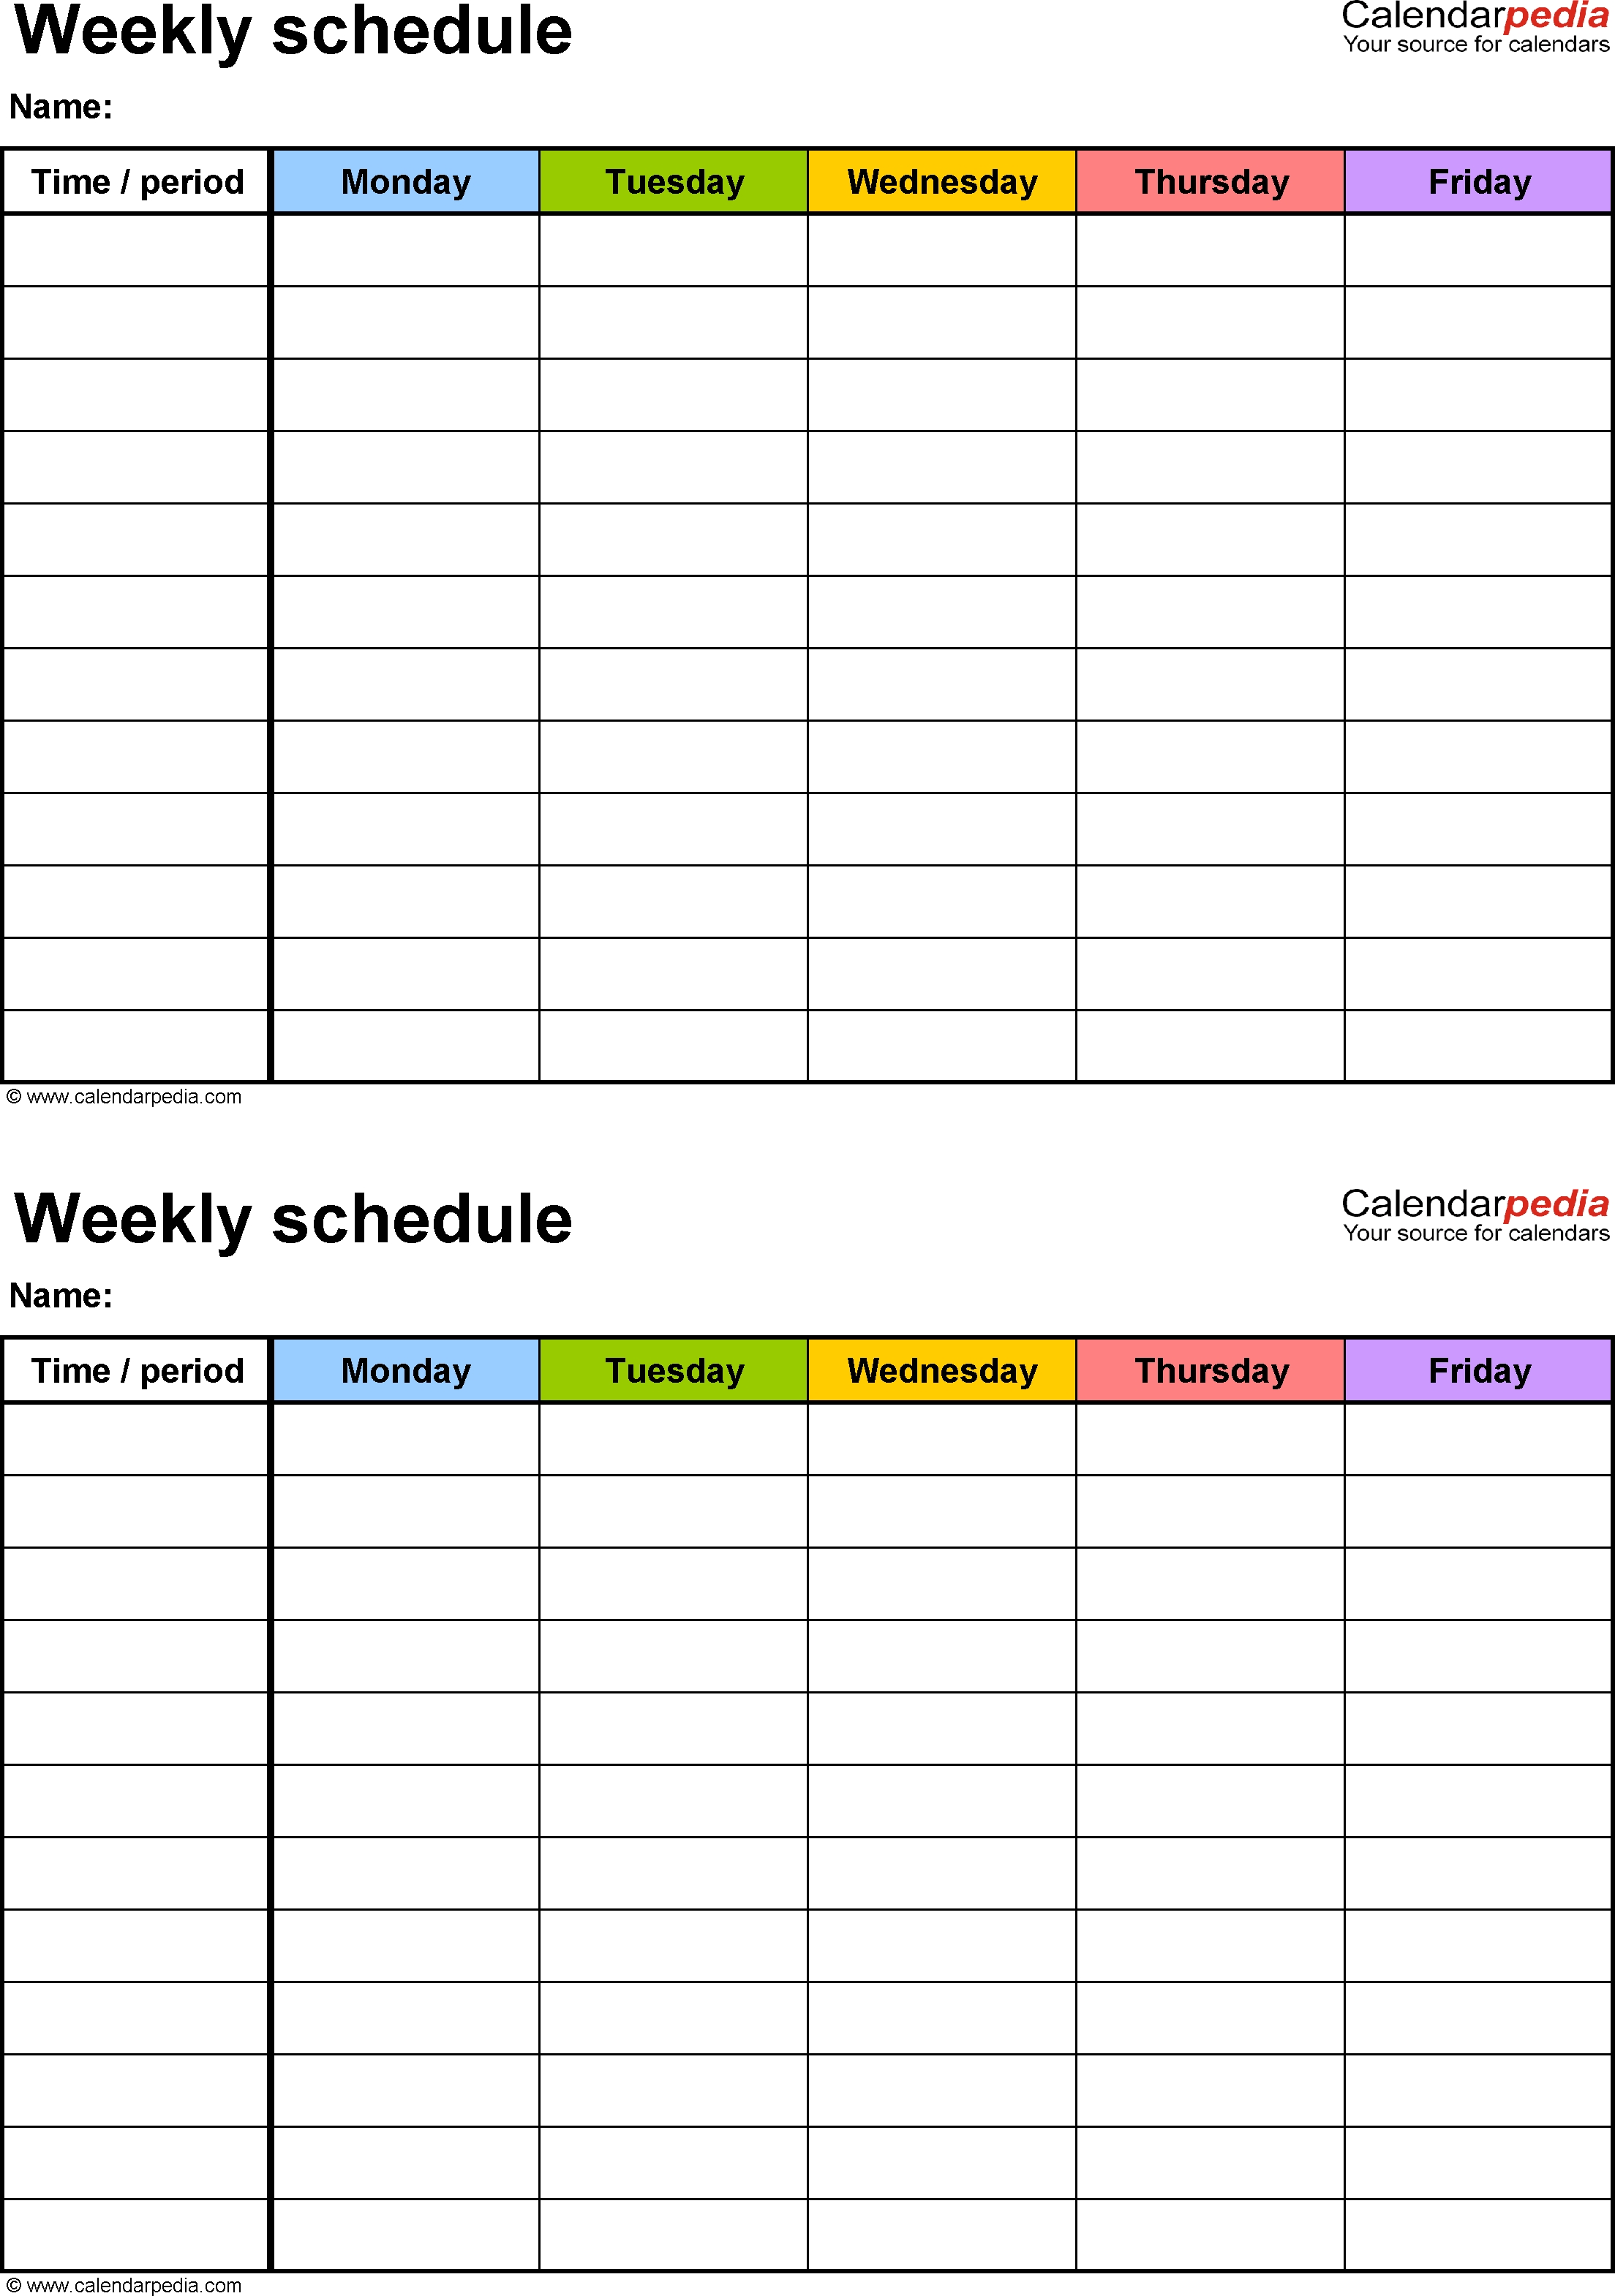 Free Weekly Schedule Templates For Pdf - 18 Templates for Printable Pick Up Schedule Template